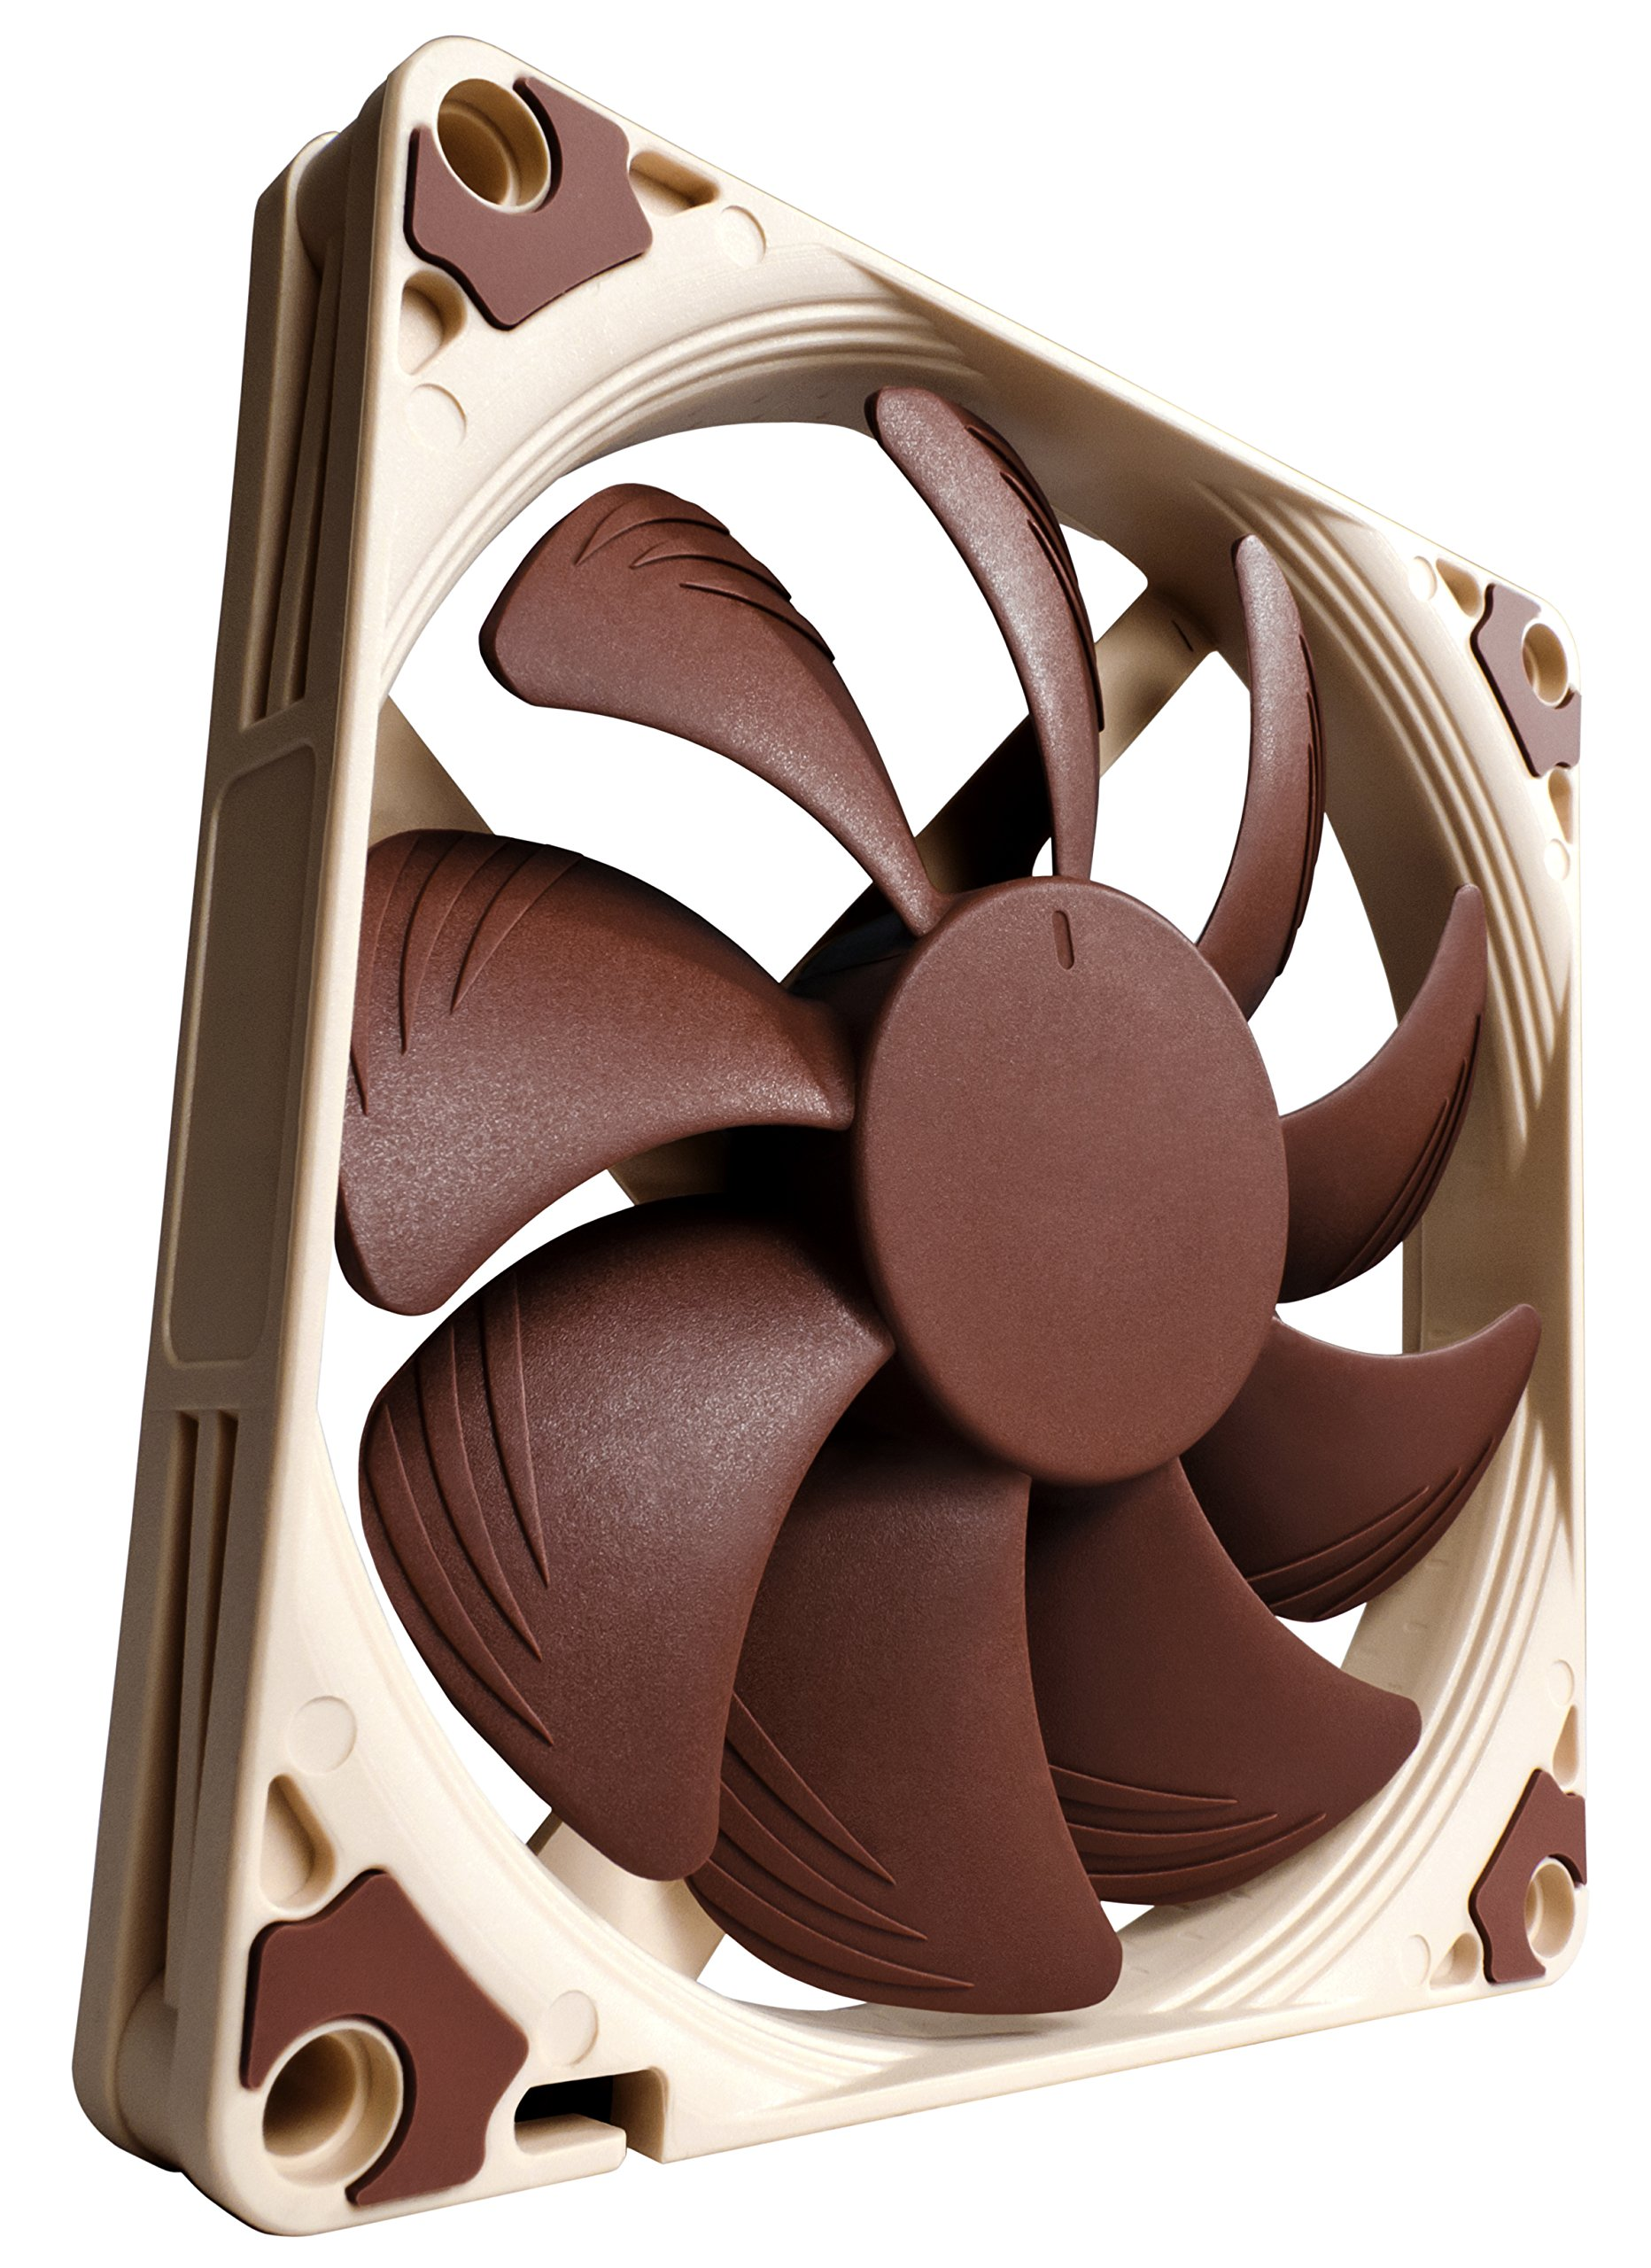 Noctua 92 x 14 mm Low-Profile Cooling Fan with A-Series Blades (NF-A9x14)